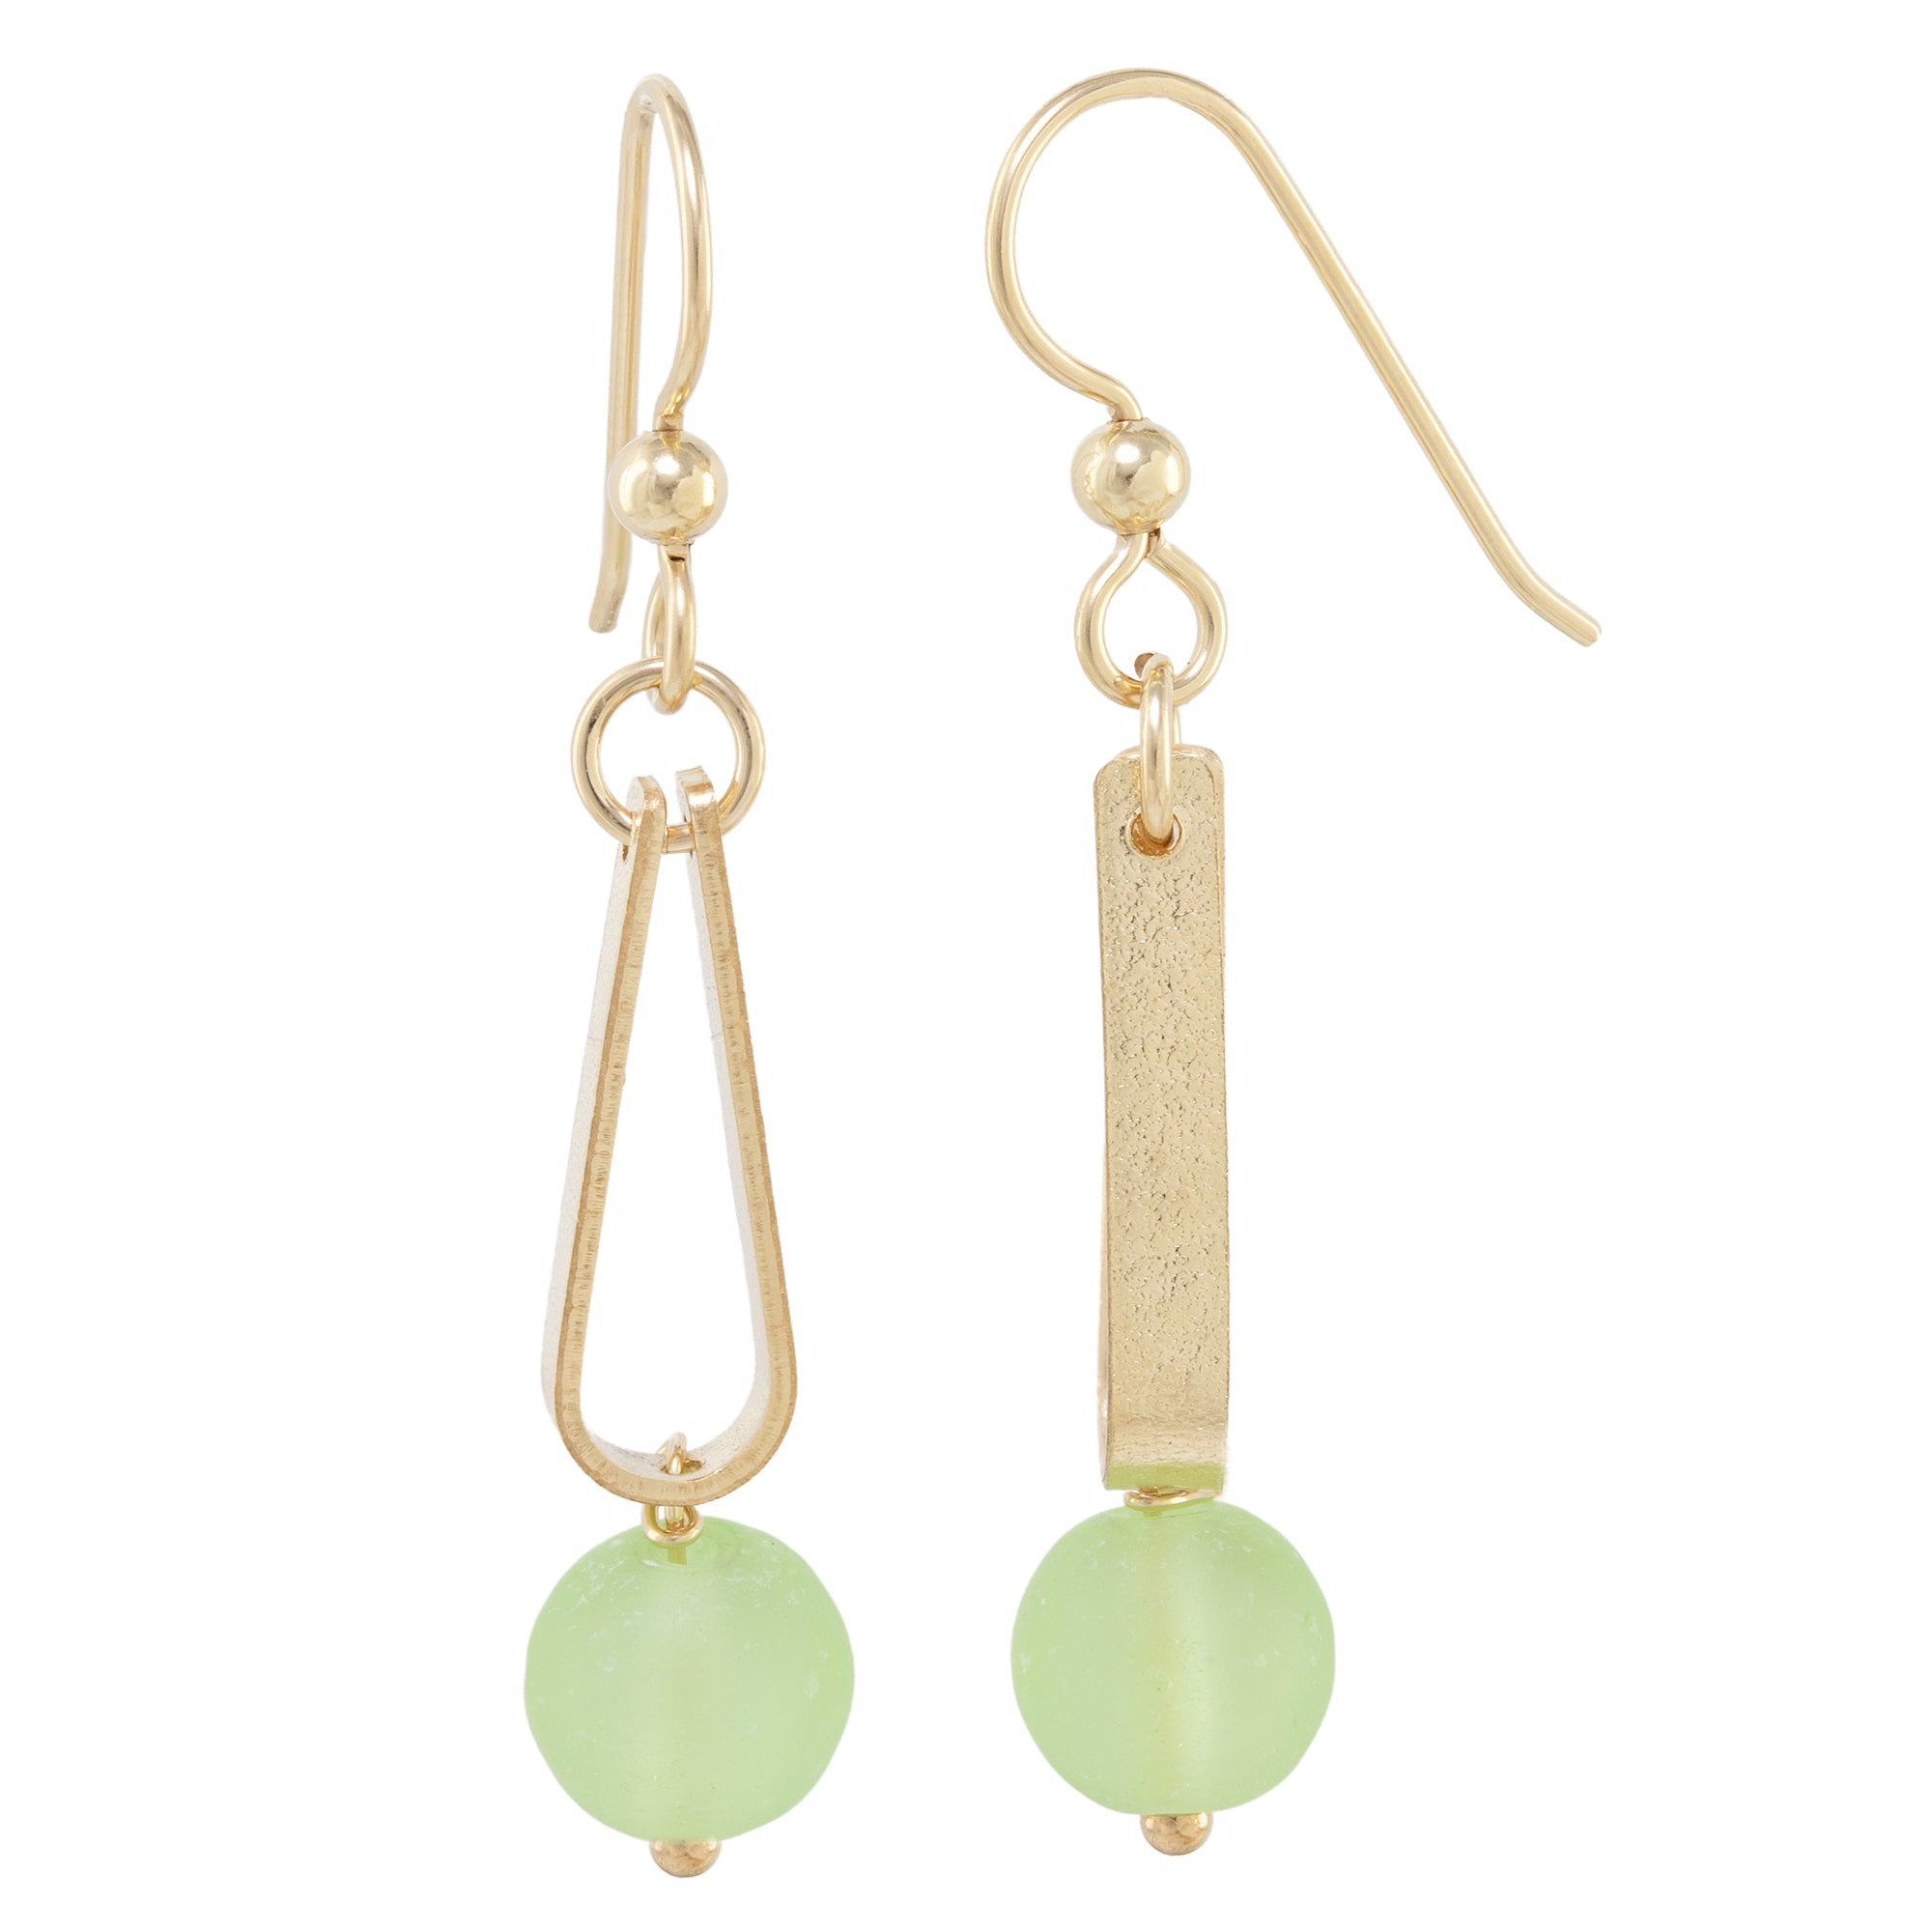 Light Pastel Sage Green Round Recycled Glass Ball and 14K Gold Fill Strap Style Dangle Earrings